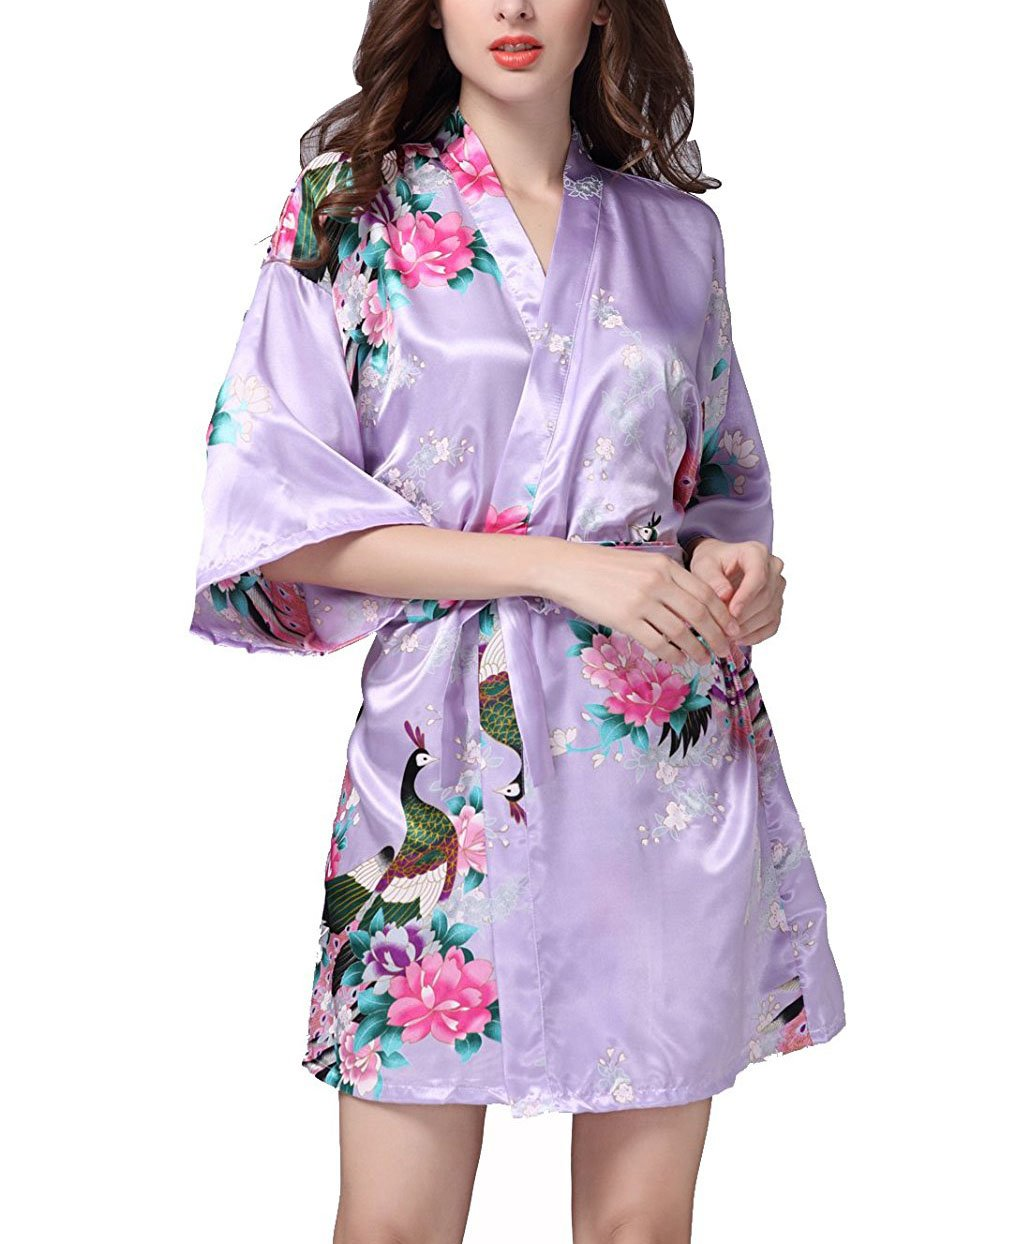 Vlazom Women Kimono Robes Satin Dressing Gown Peacock and Blossoms Sleep Lounge Nightwear Short Silk Bride Bridesmaid Robe